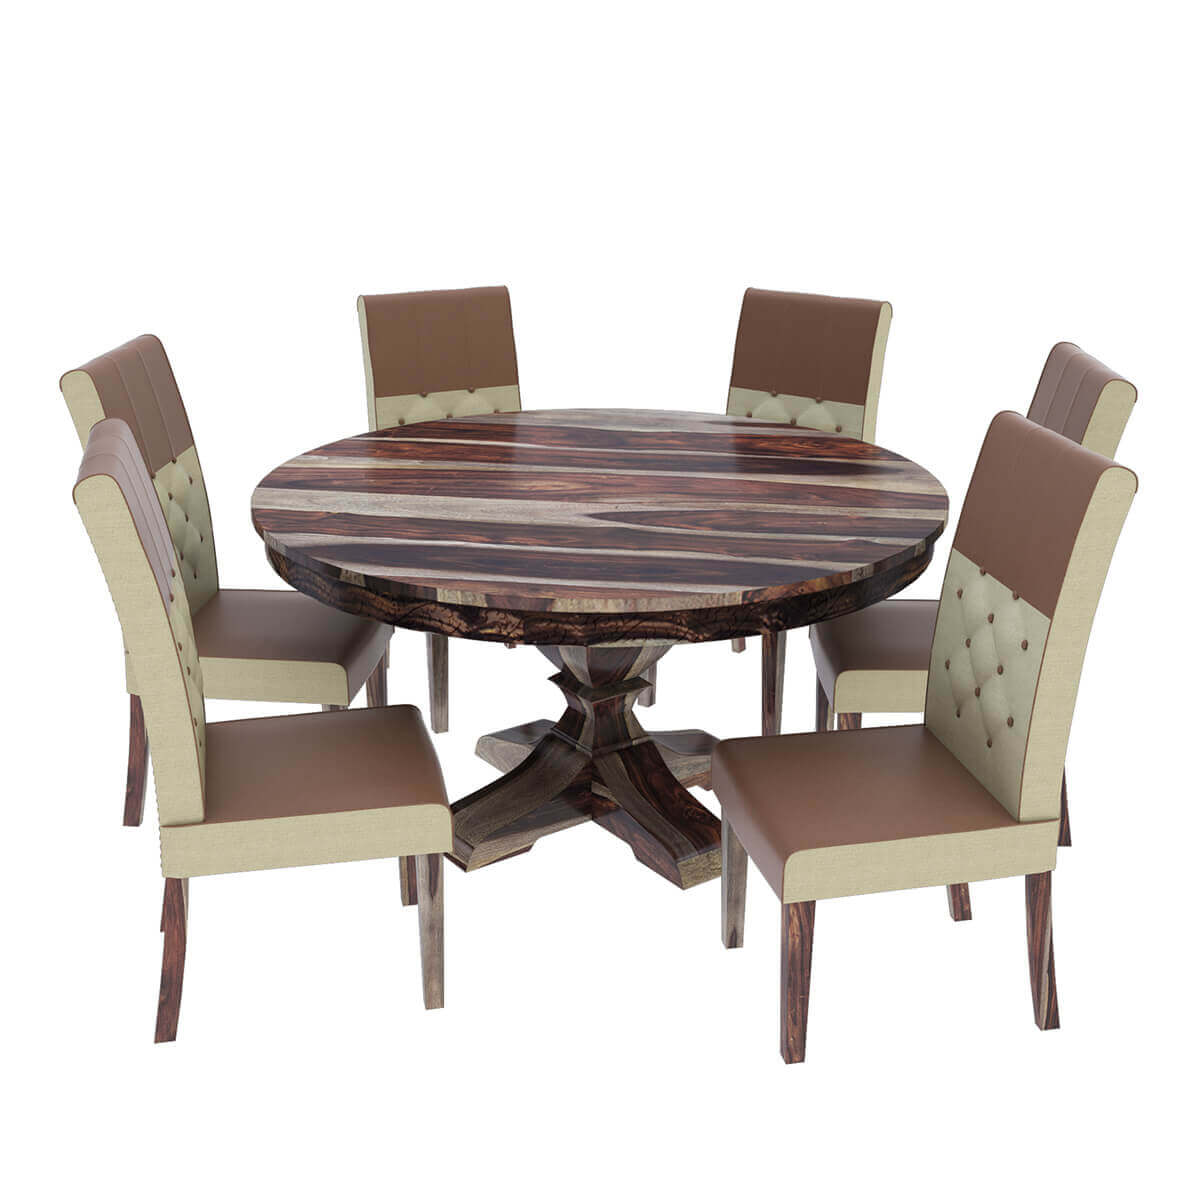 Round Solid Wood Dining Table: Hosford Handcrafted Solid Wood Round Dining Table And 6